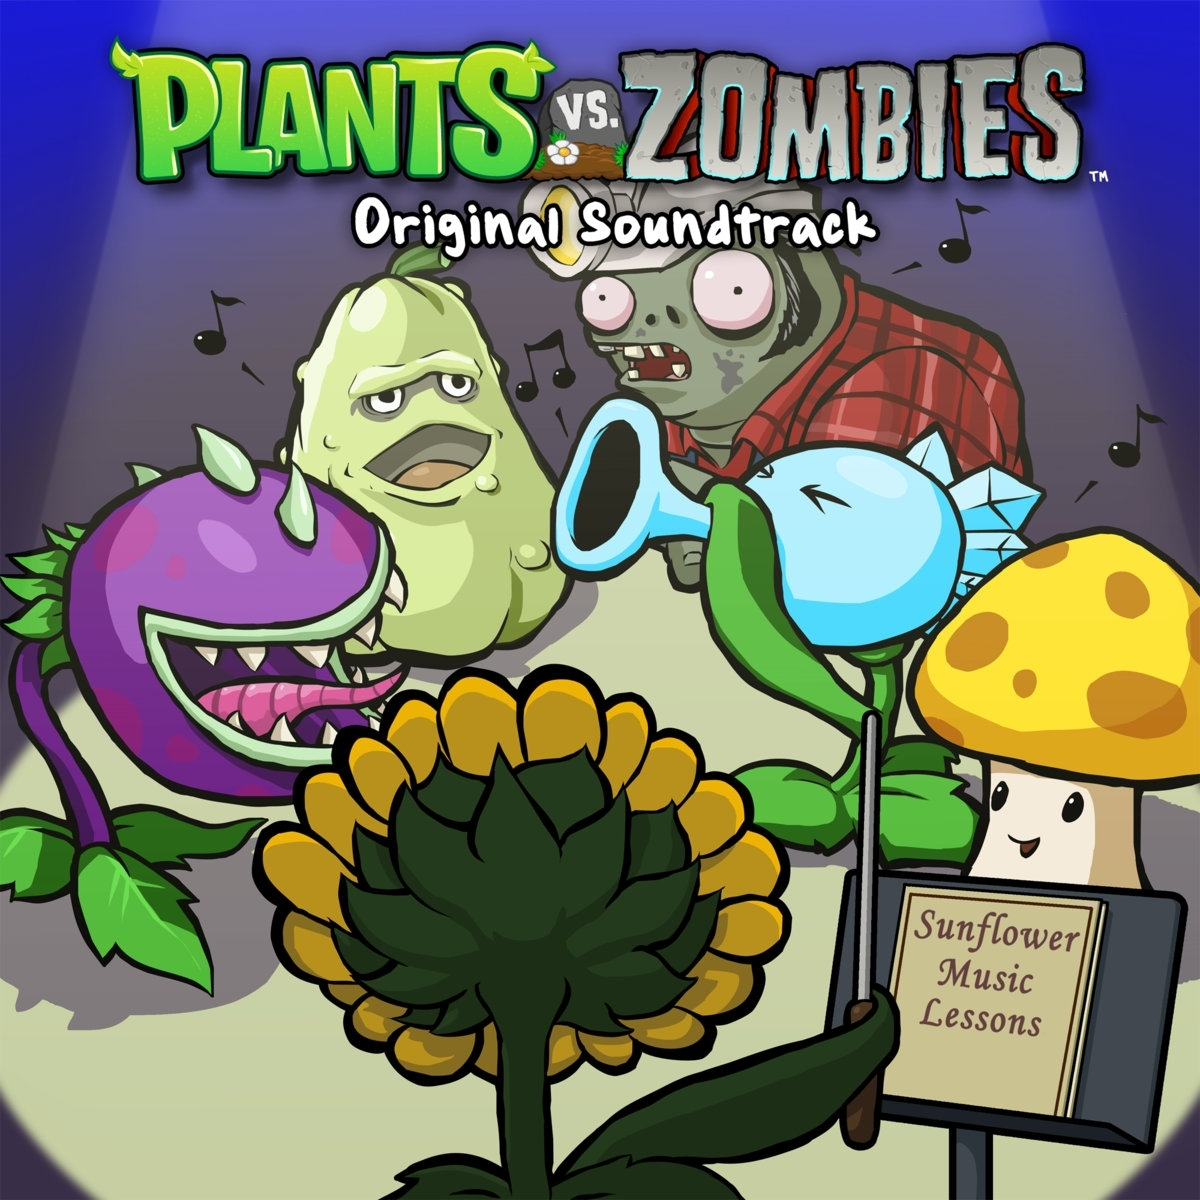 Plants Vs. Zombies Soundtrack | Laura Shigihara with regard to Zen Garden Plants Vs Zombies Music